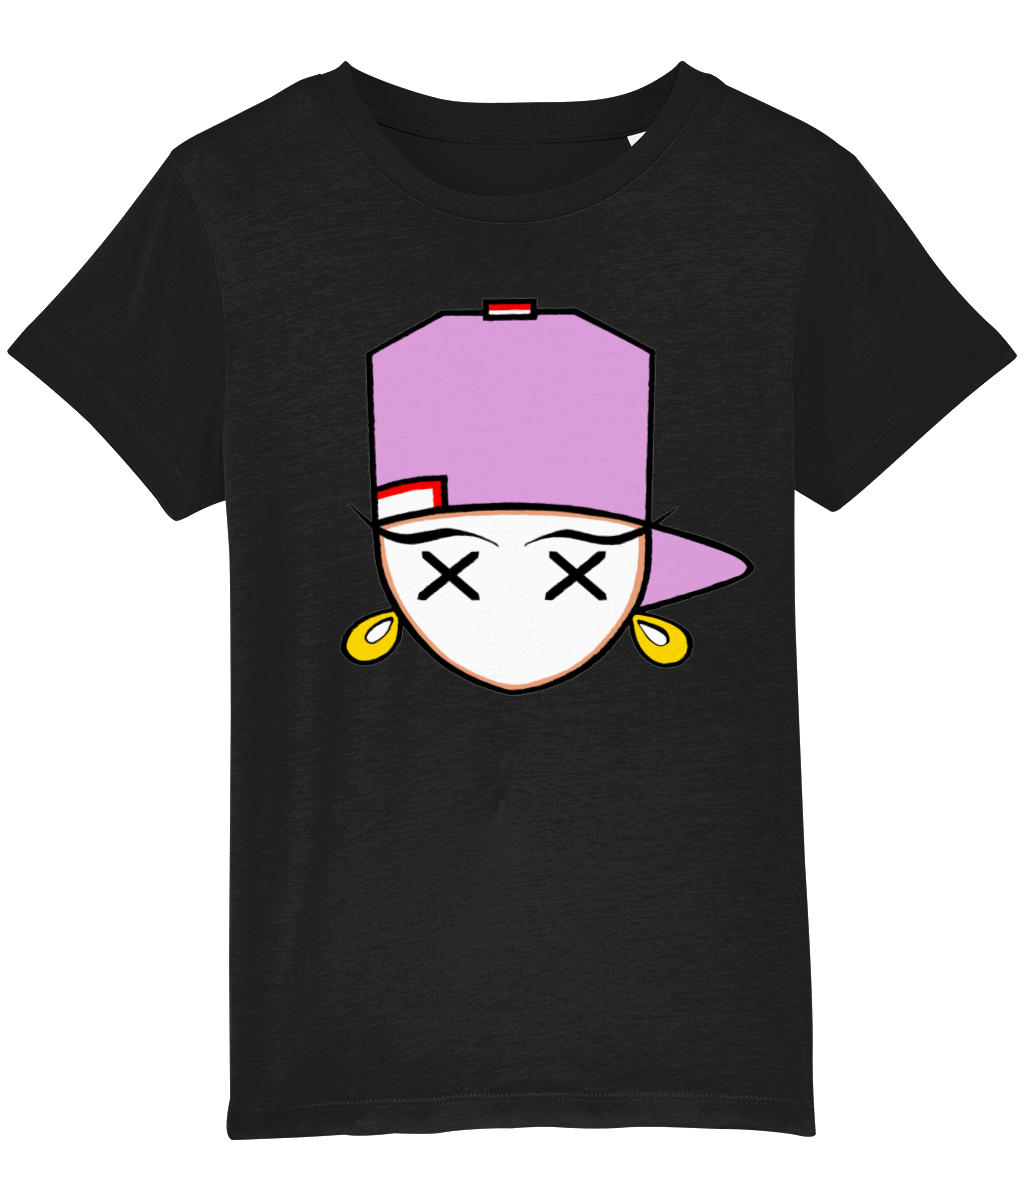 kids t'shirt Mini Creator 15 plum girl